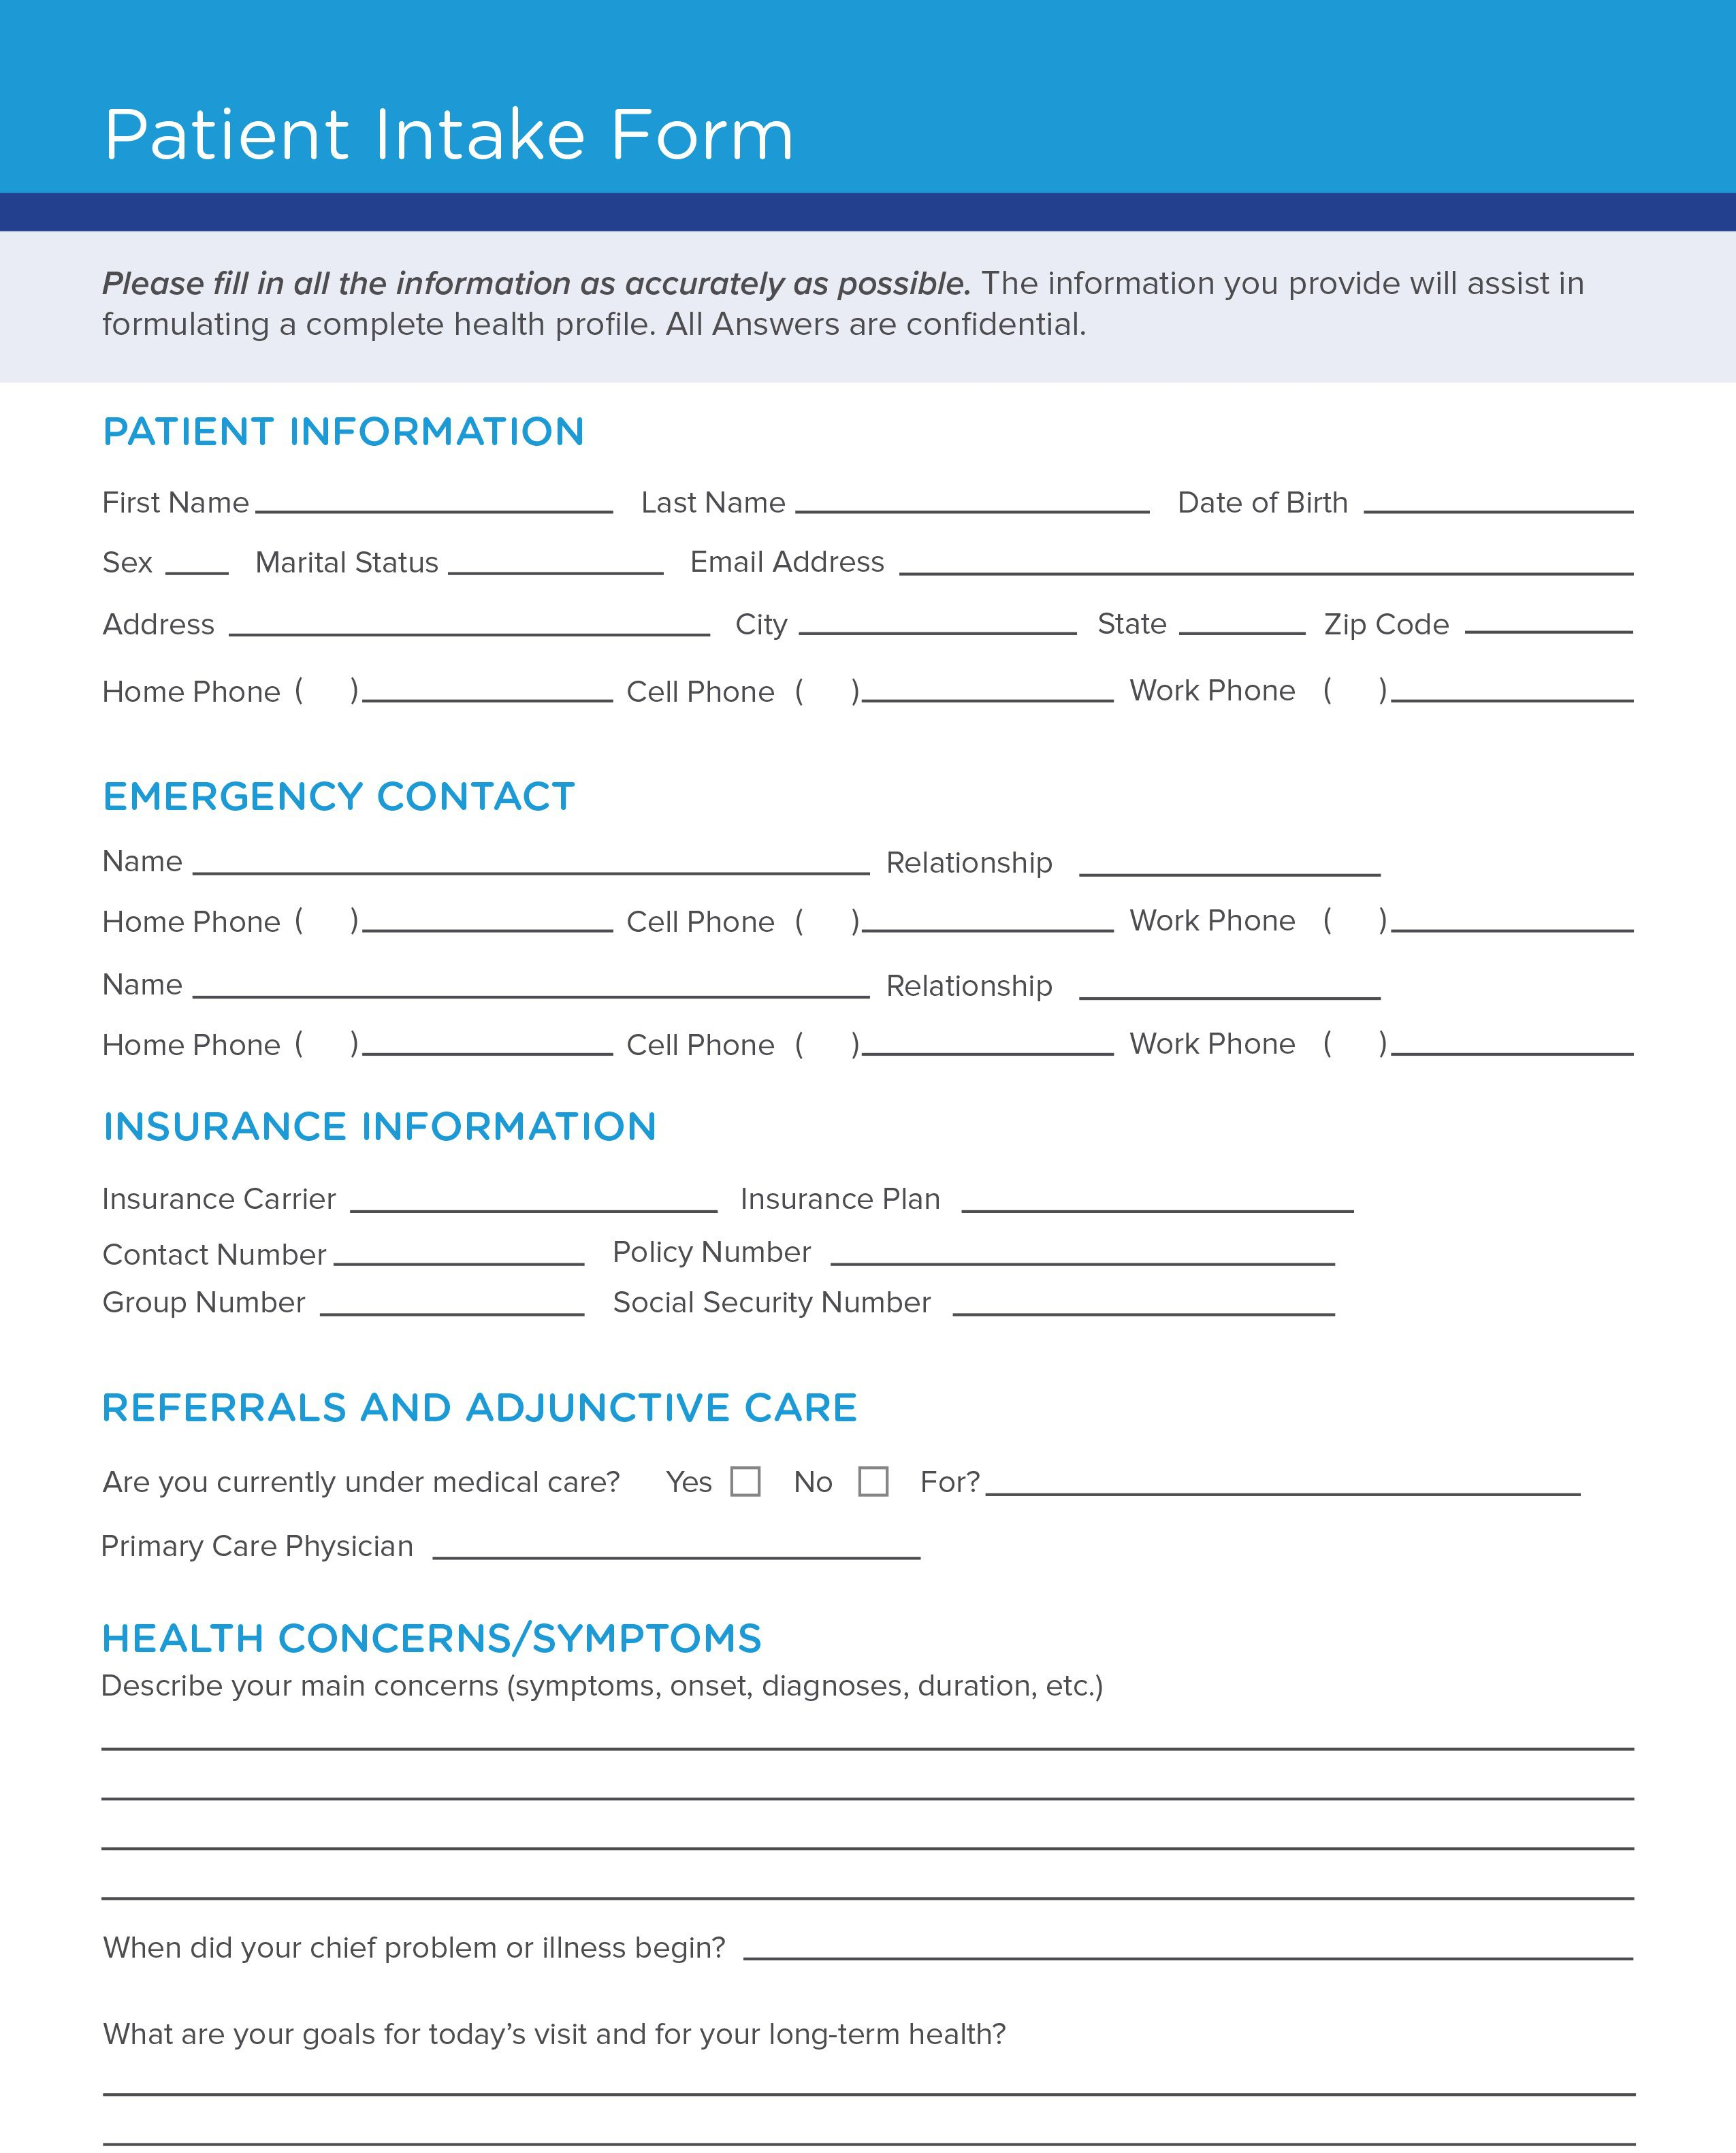 008 Excellent Patient Intake Form Template Design  Word Client Excel PdfFull